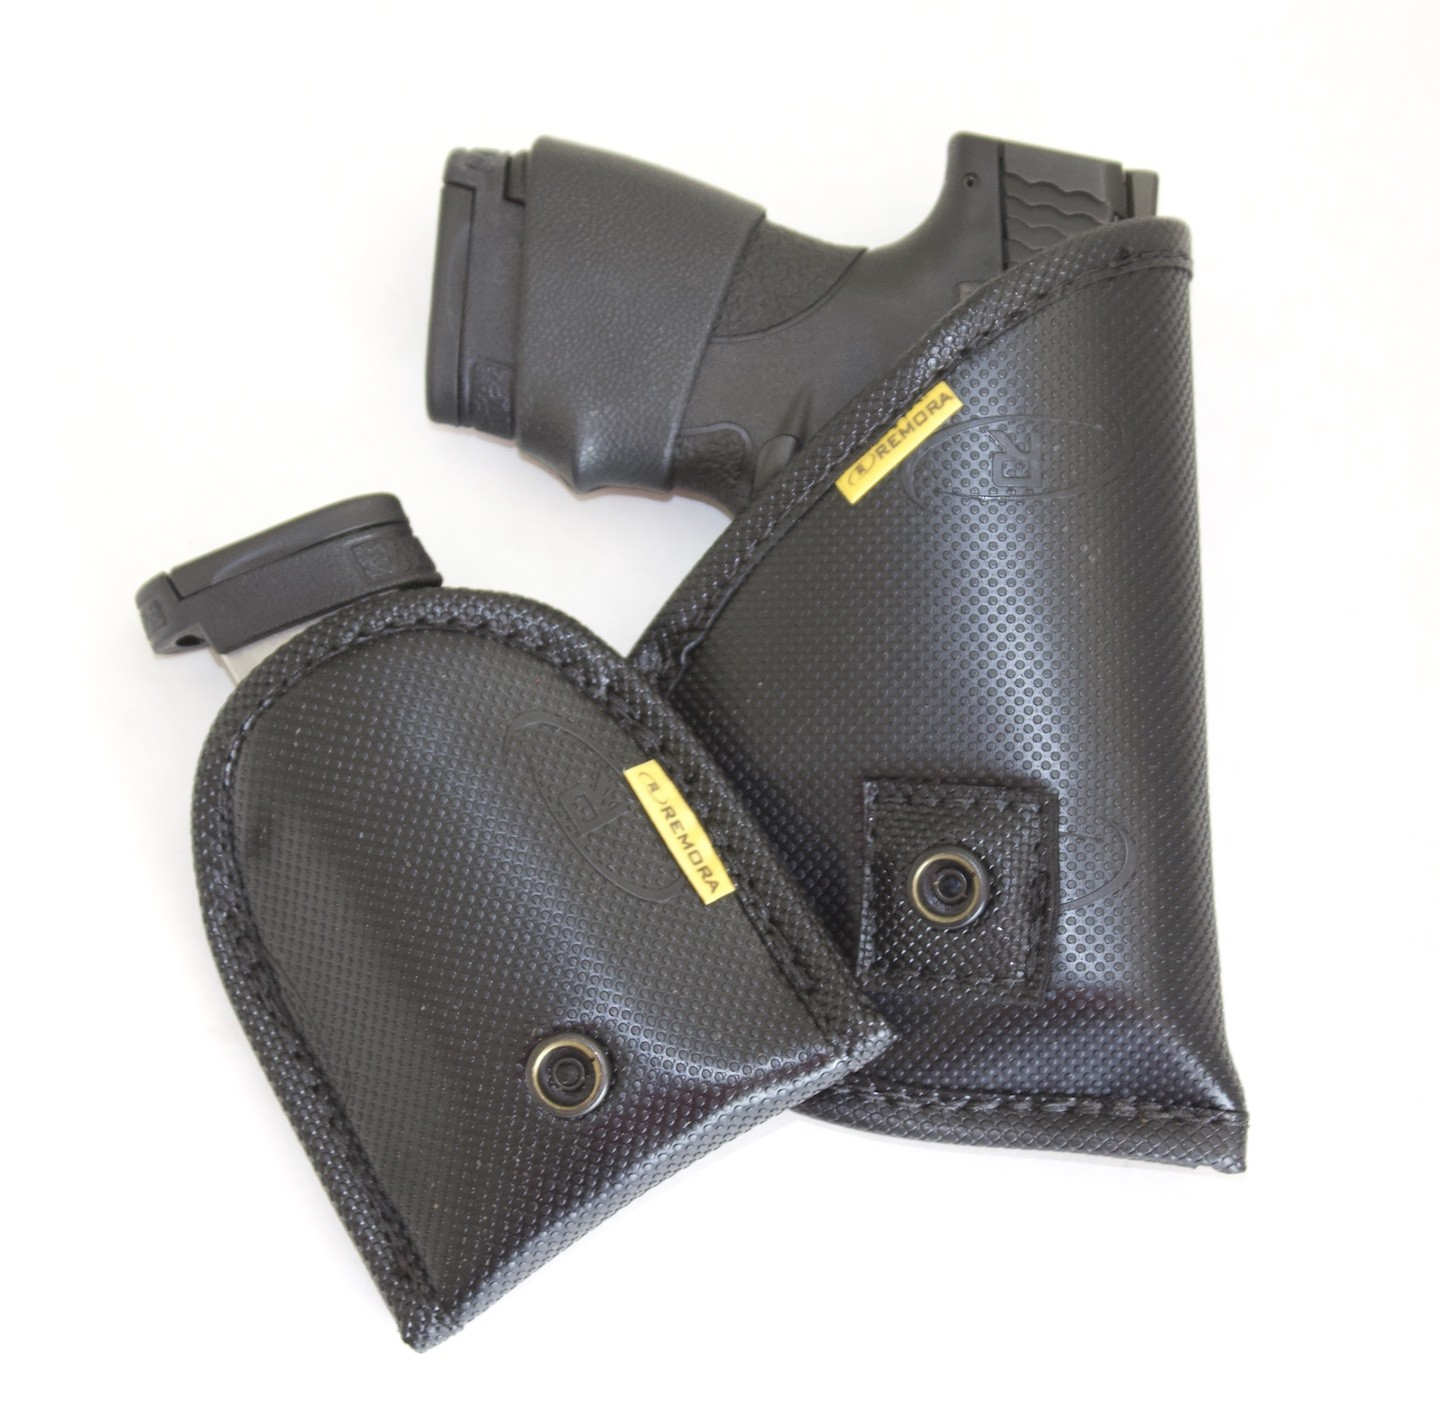 combo 2 in 1 holster and mag holder no clip